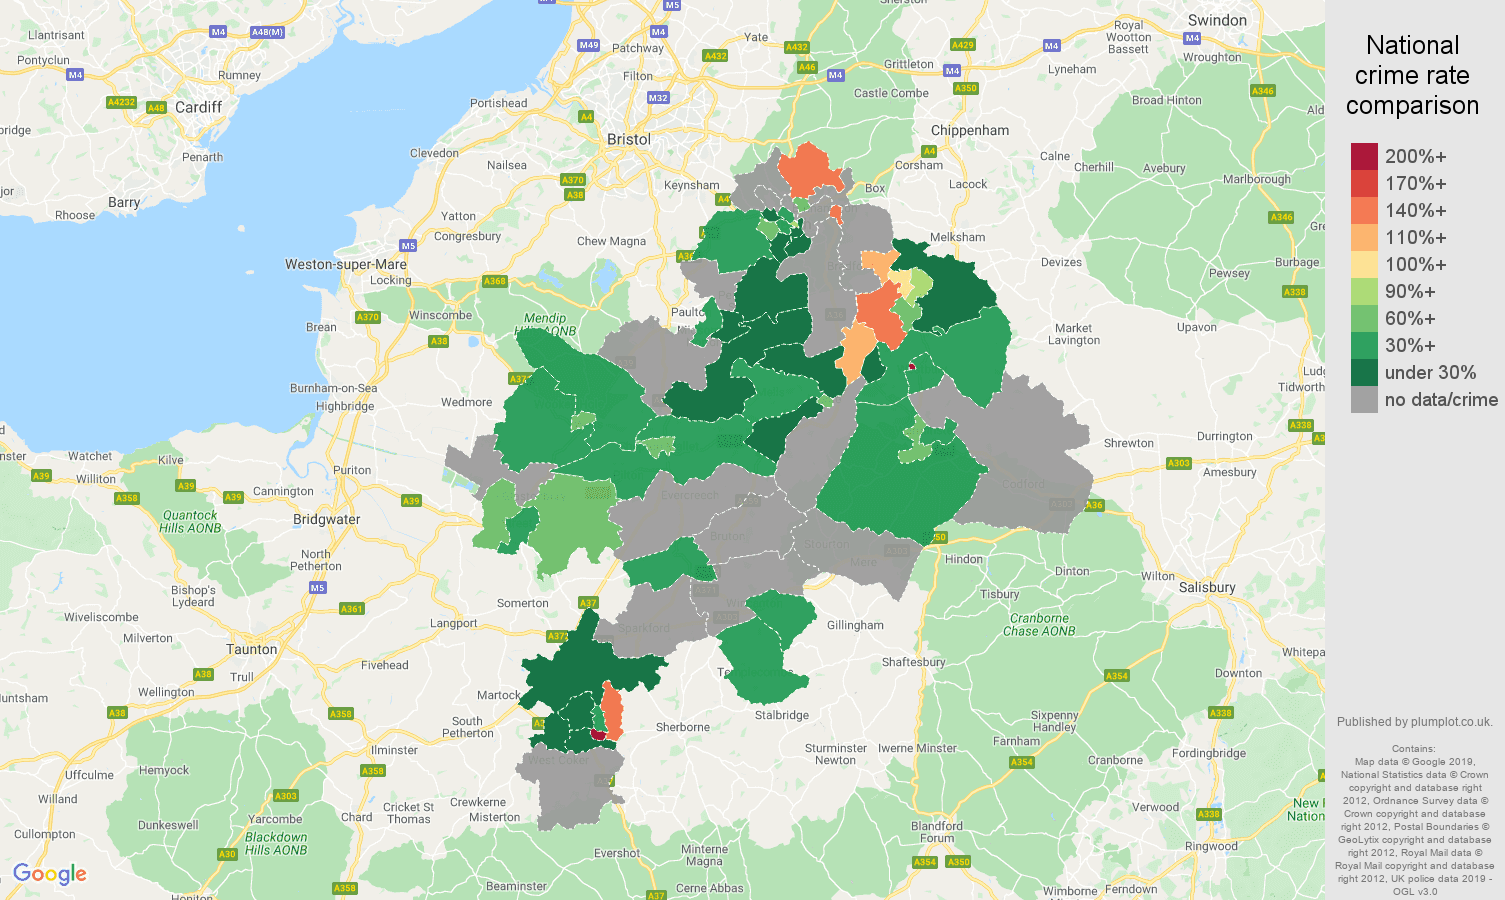 Bath possession of weapons crime rate comparison map